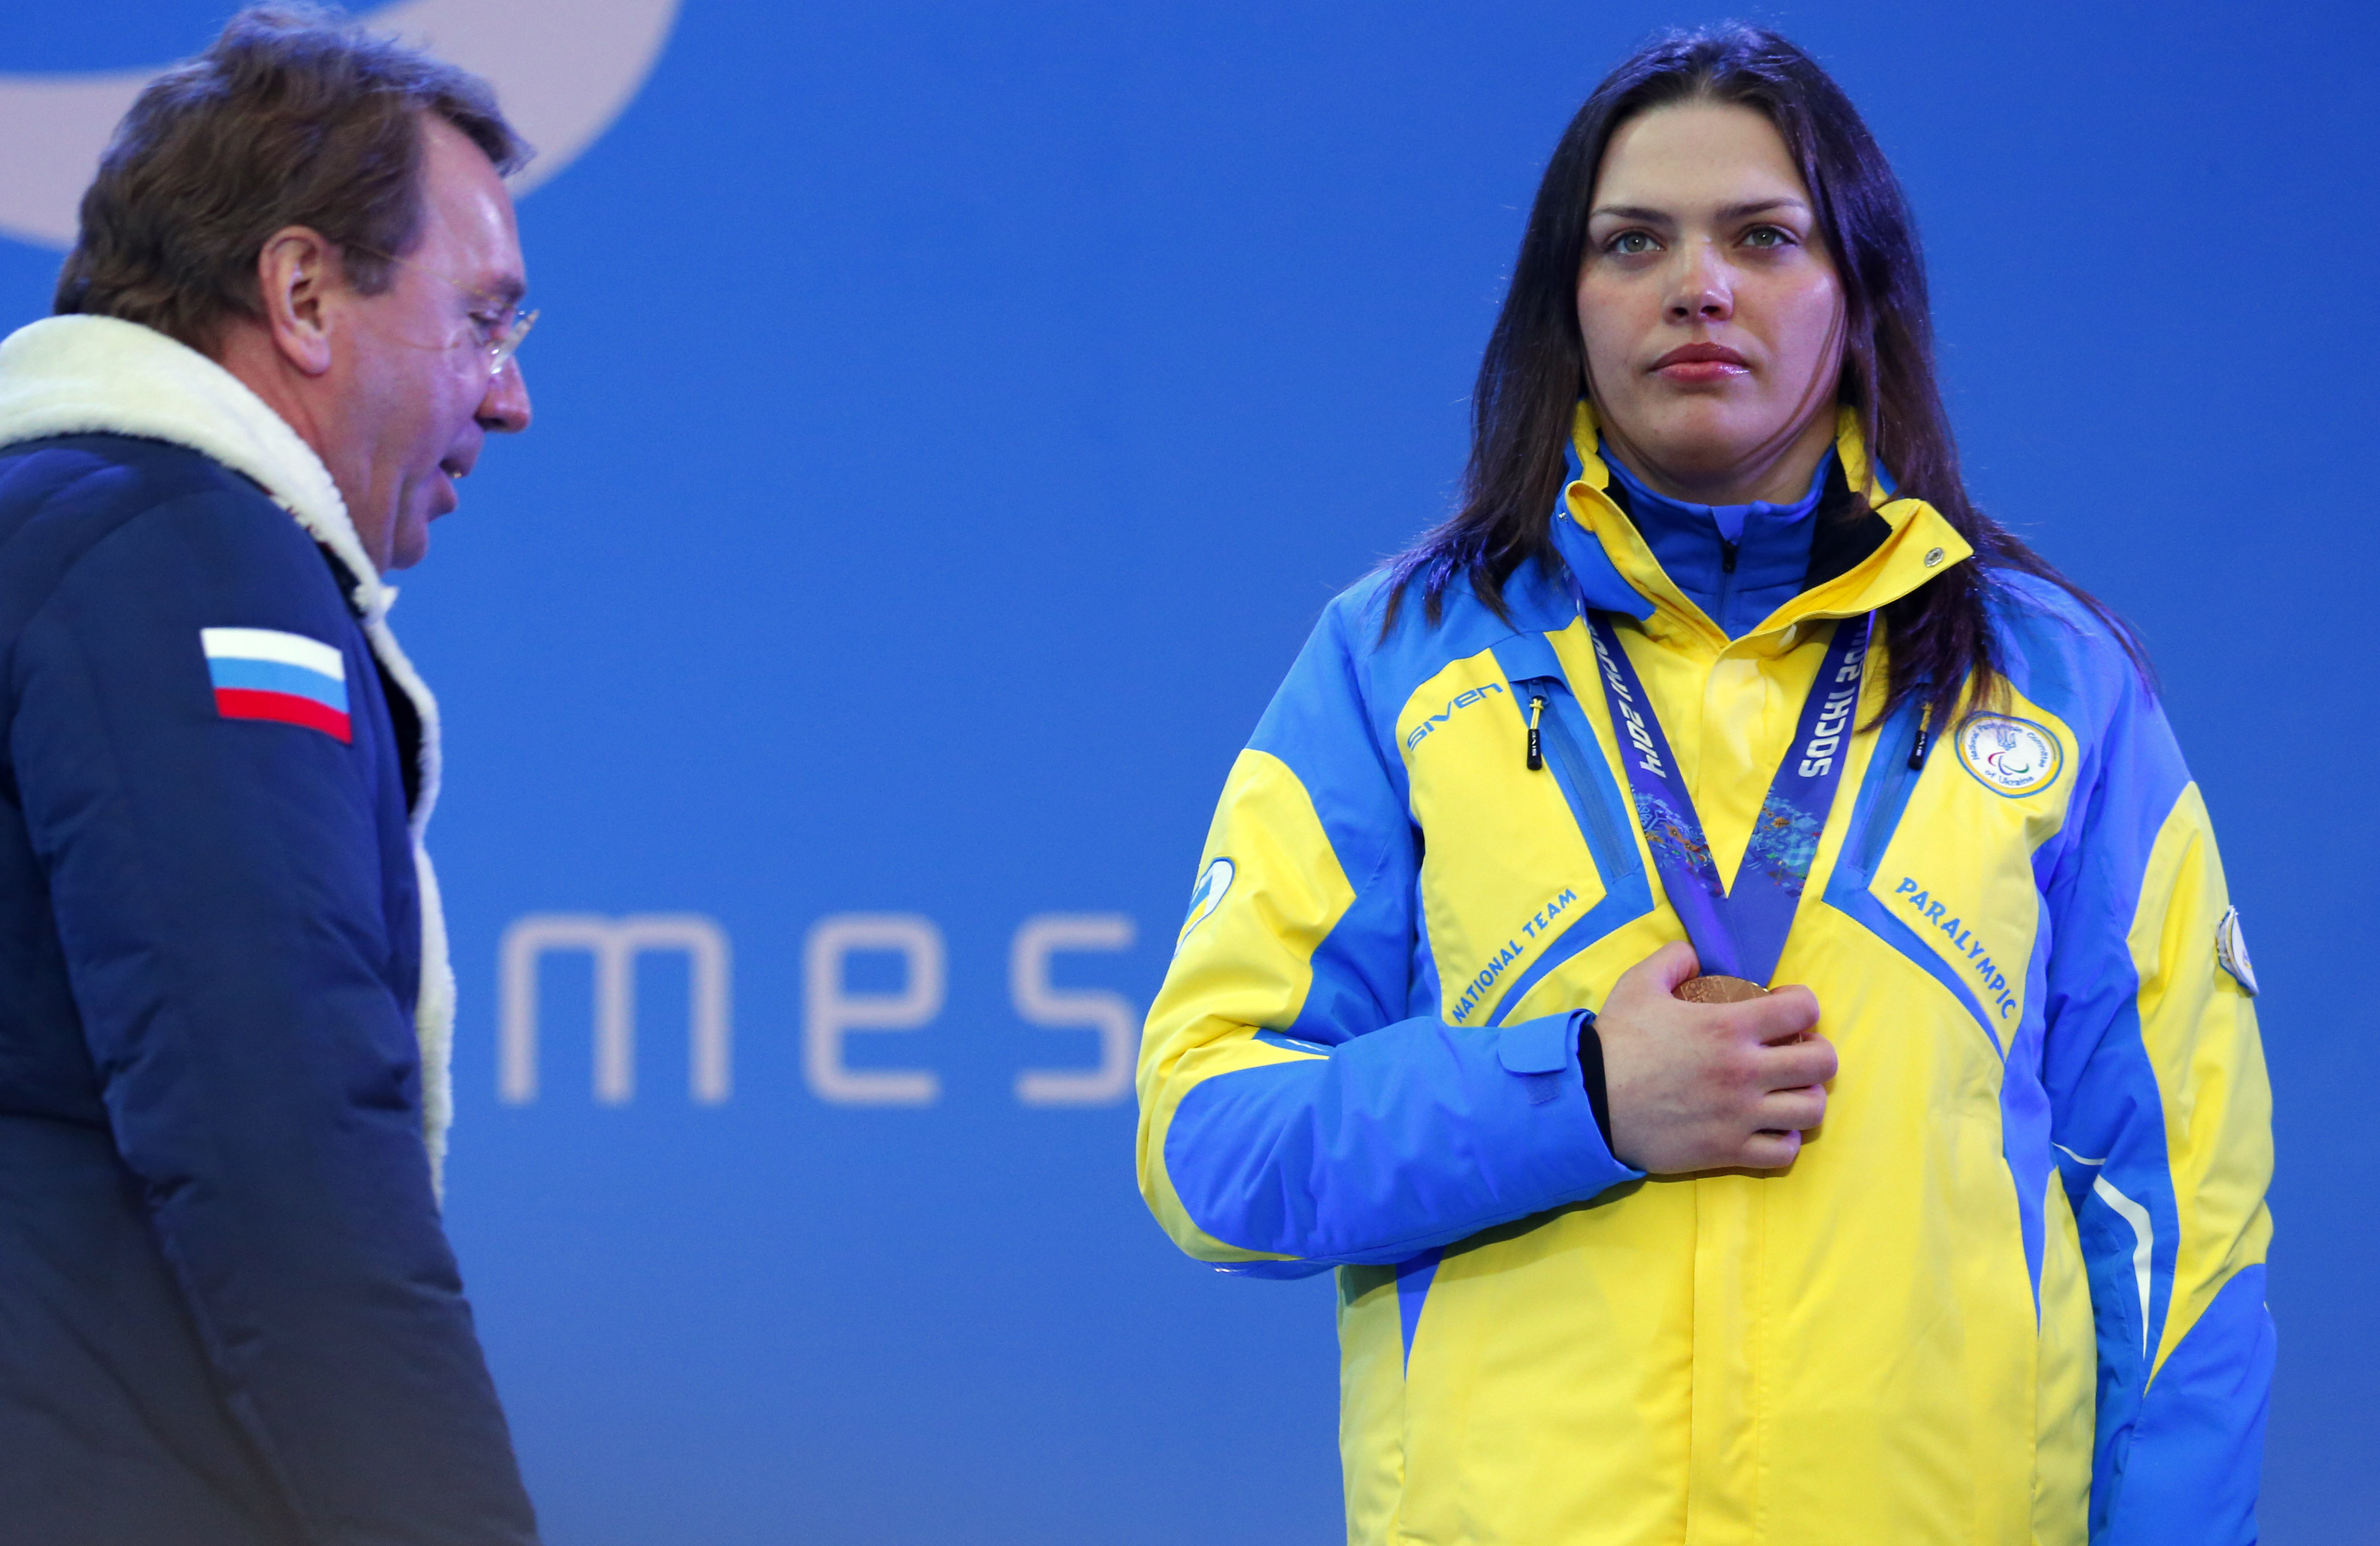 Ukraine's Olena Iurkovska covers her bronze medal with her hand after finishing third in the women's biathlon 12,5 km sitting as Kremlin Chief Property Manager Vladimir Kozhin passes by during a medal ceremony at the 2014 Winter Paralympics, Friday, March 14, 2014, in Krasnaya Polyana, Russia. The majority of Ukraine's Paralympic medalists covered their medals during medal ceremonies. (AP Photo/Dmitry Lovetsky)